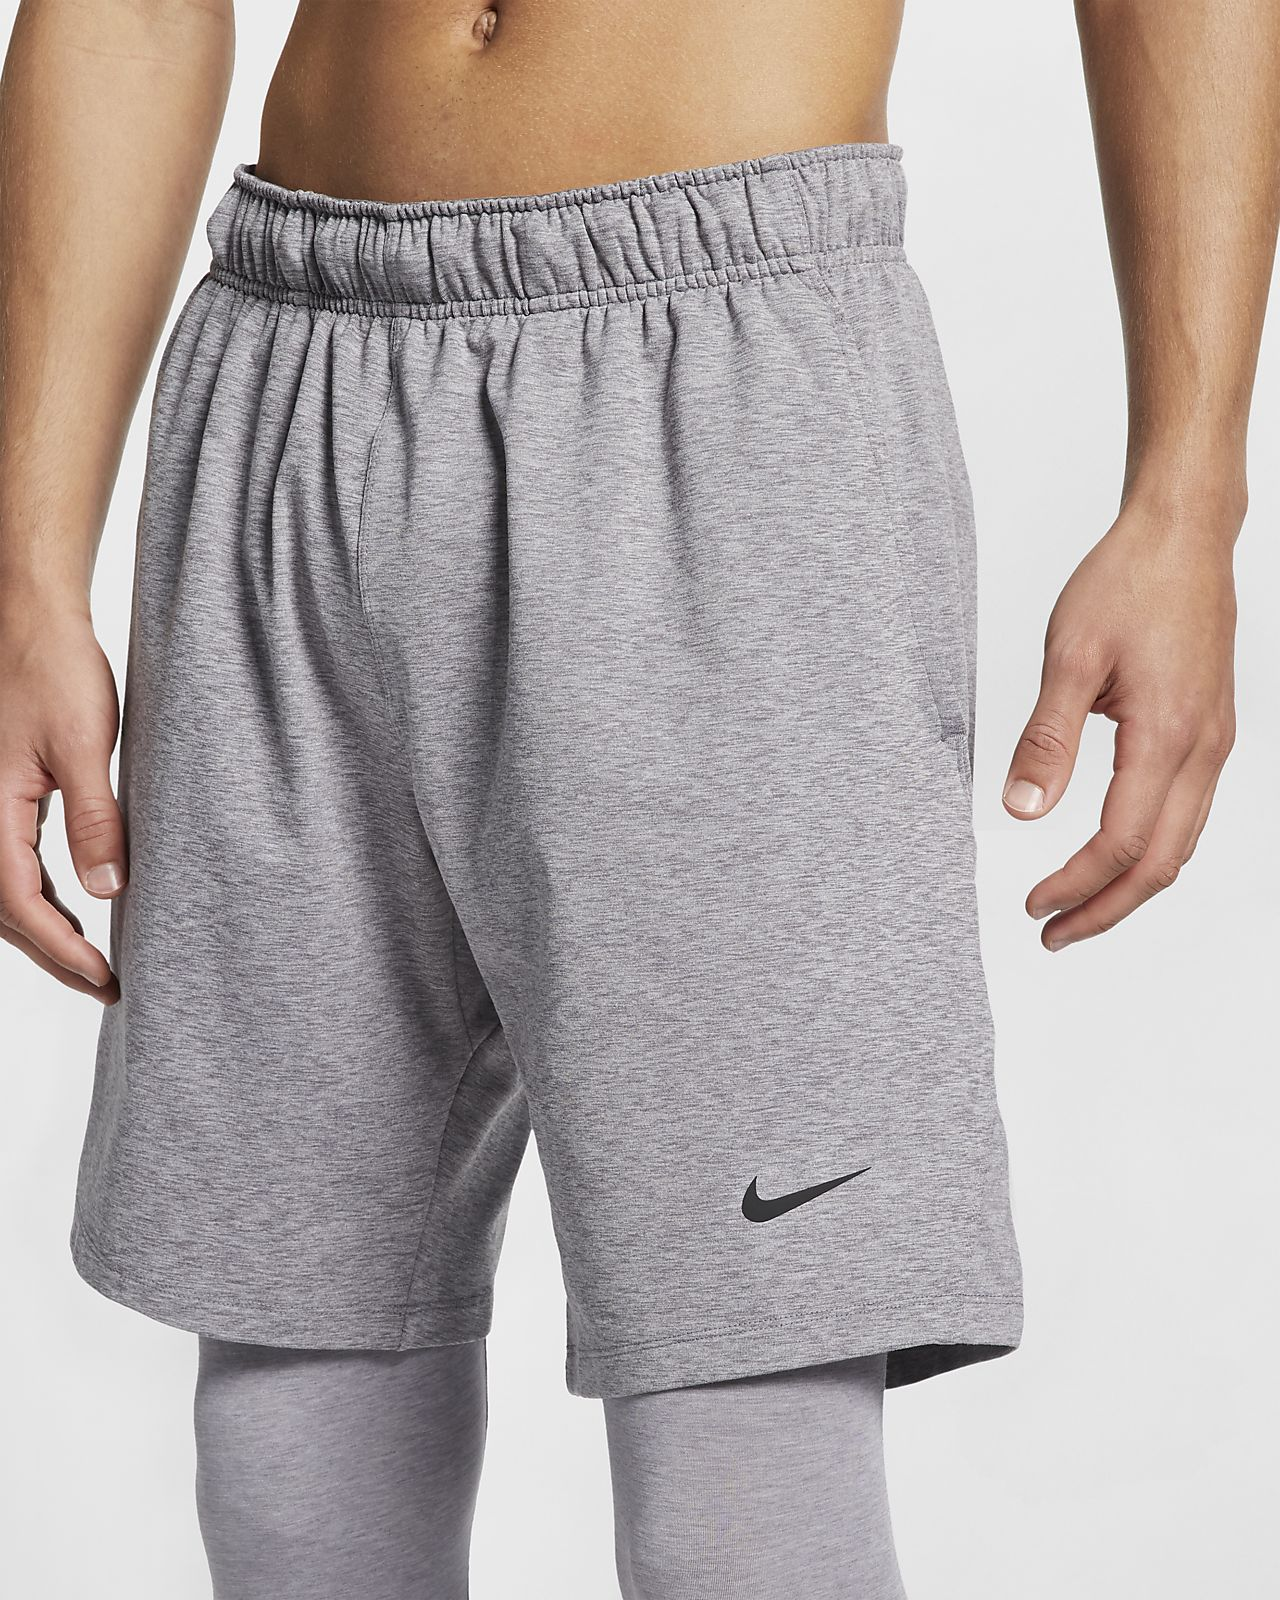 Nike Dri-FIT Yoga-Trainingsshorts für Herren